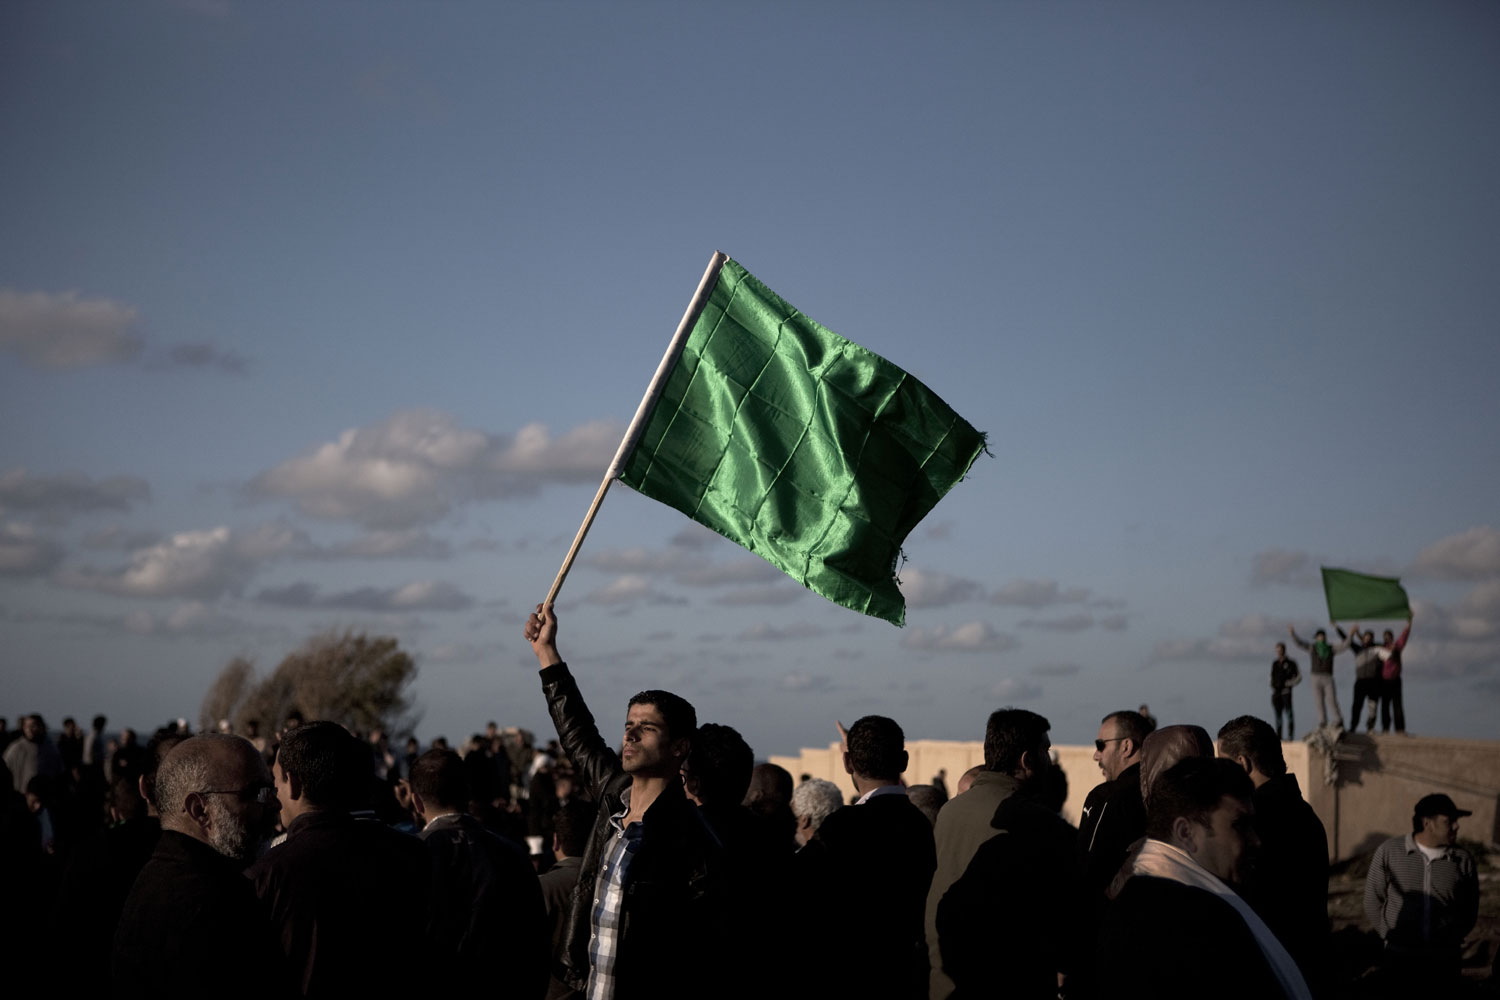 Loyalists express their support for Gaddafi in the cemetery, March 20, 2011.